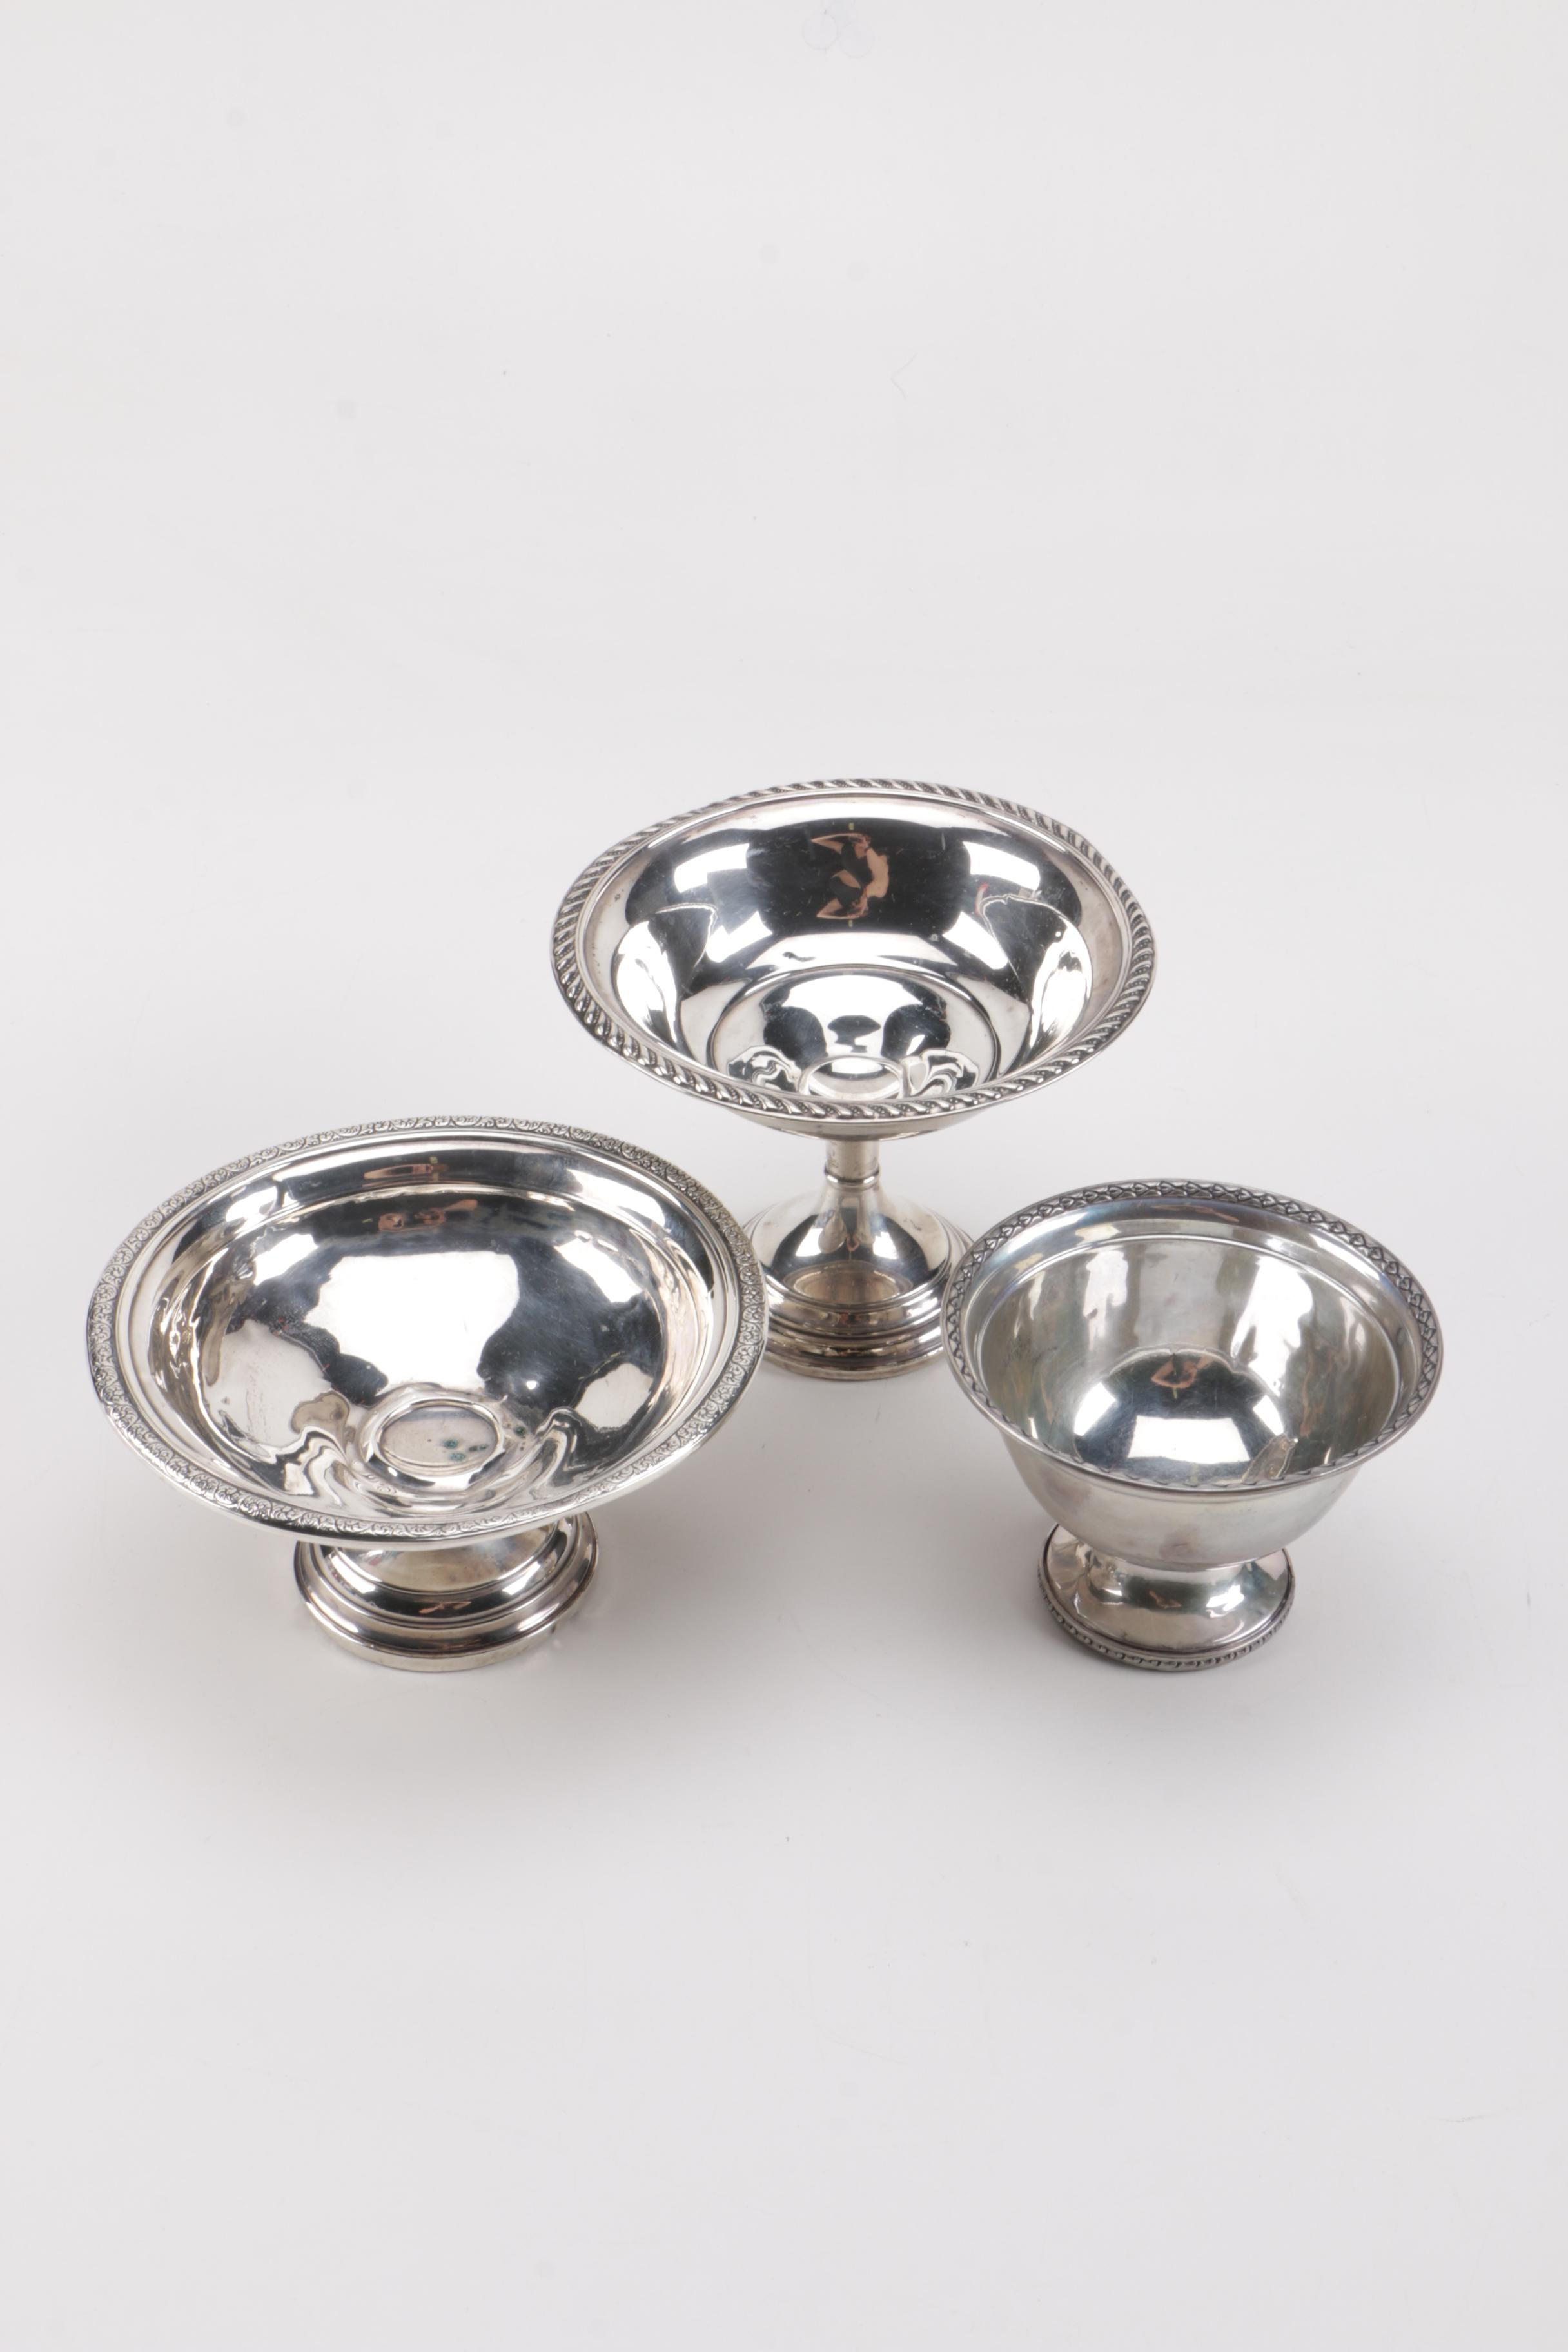 Weighted Sterling Compotes and Bowl Featuring Revere Silversmiths